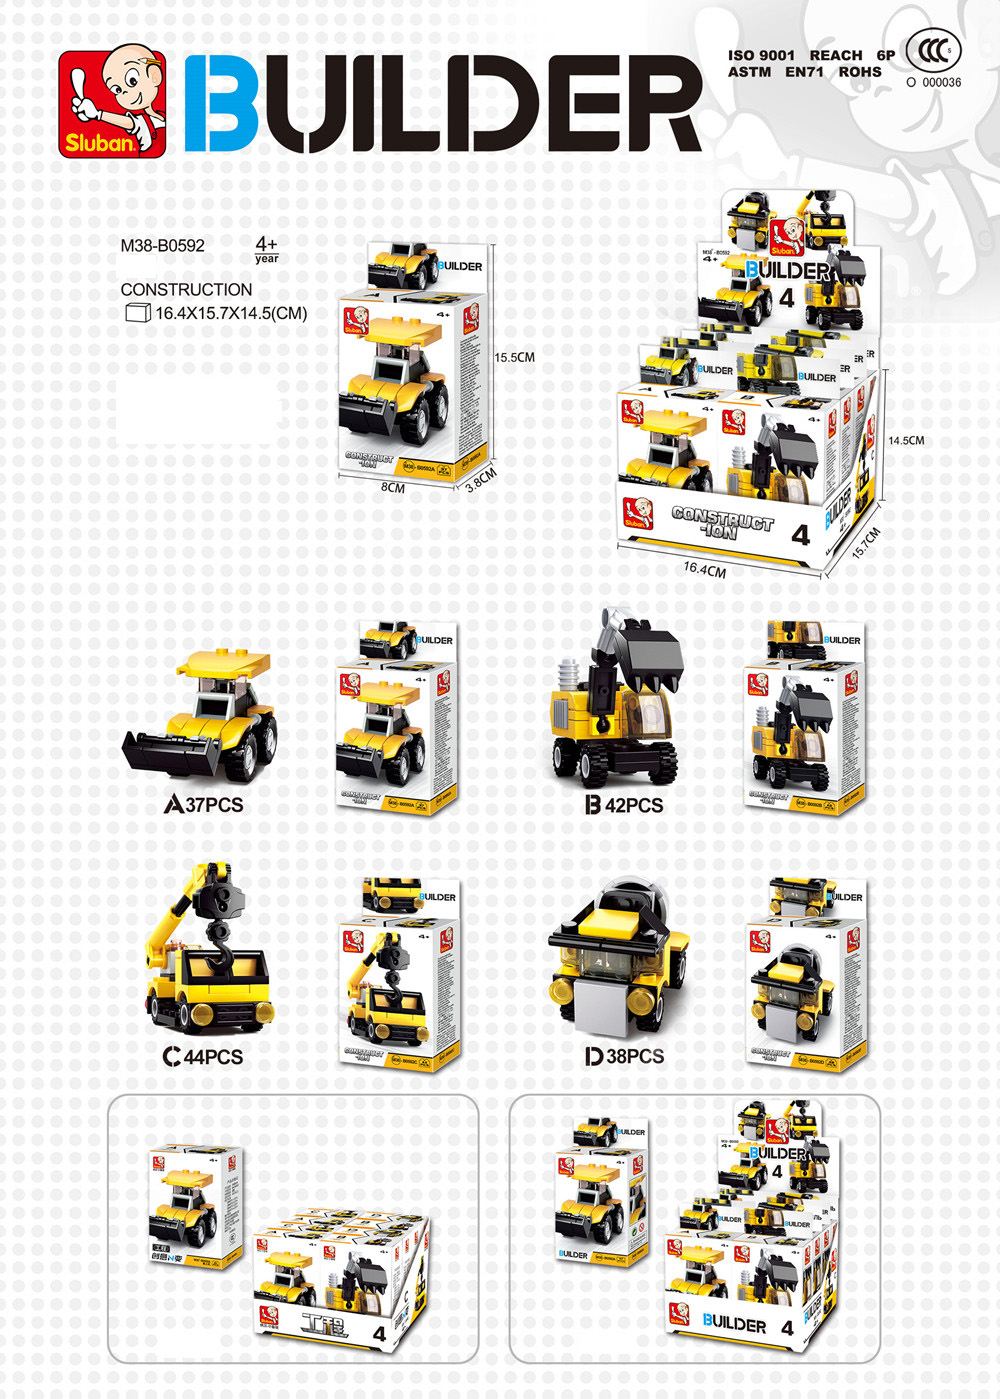 Sluban Building Blocks Educational Kids Toy Different Models 8PCS Construction Vehicles Set Creators (322 Granulum)